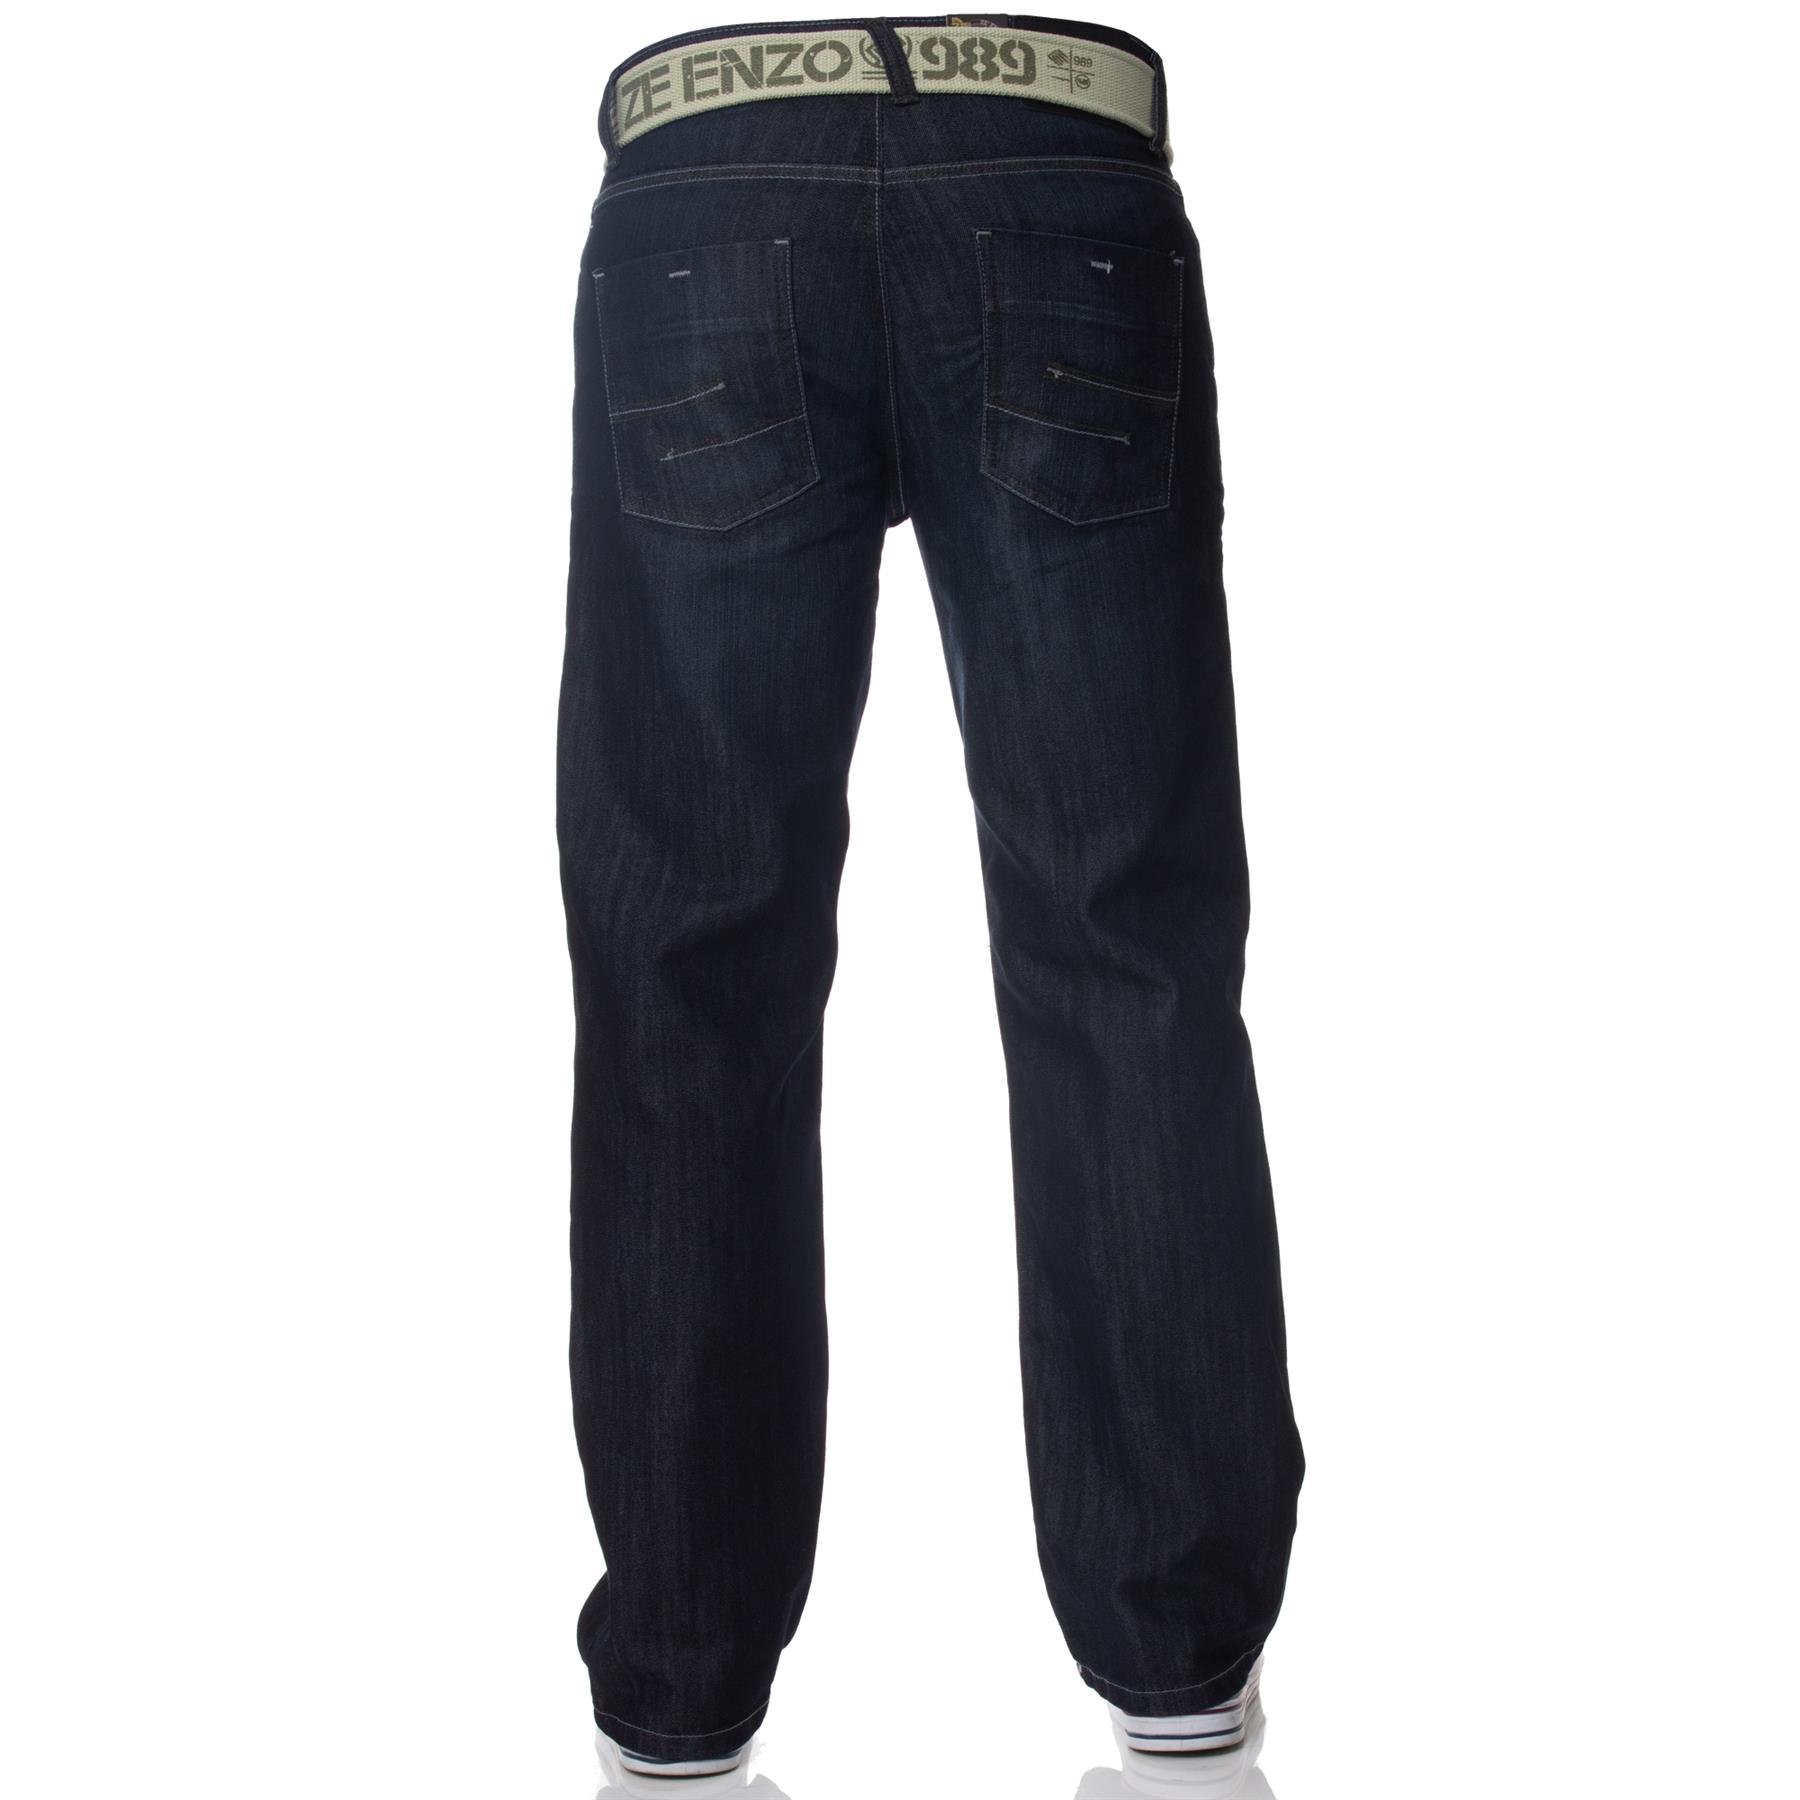 Enzo-Mens-Jeans-Big-Tall-Leg-King-Size-Denim-Pants-Chino-Trousers-Waist-44-034-60-034 miniature 9